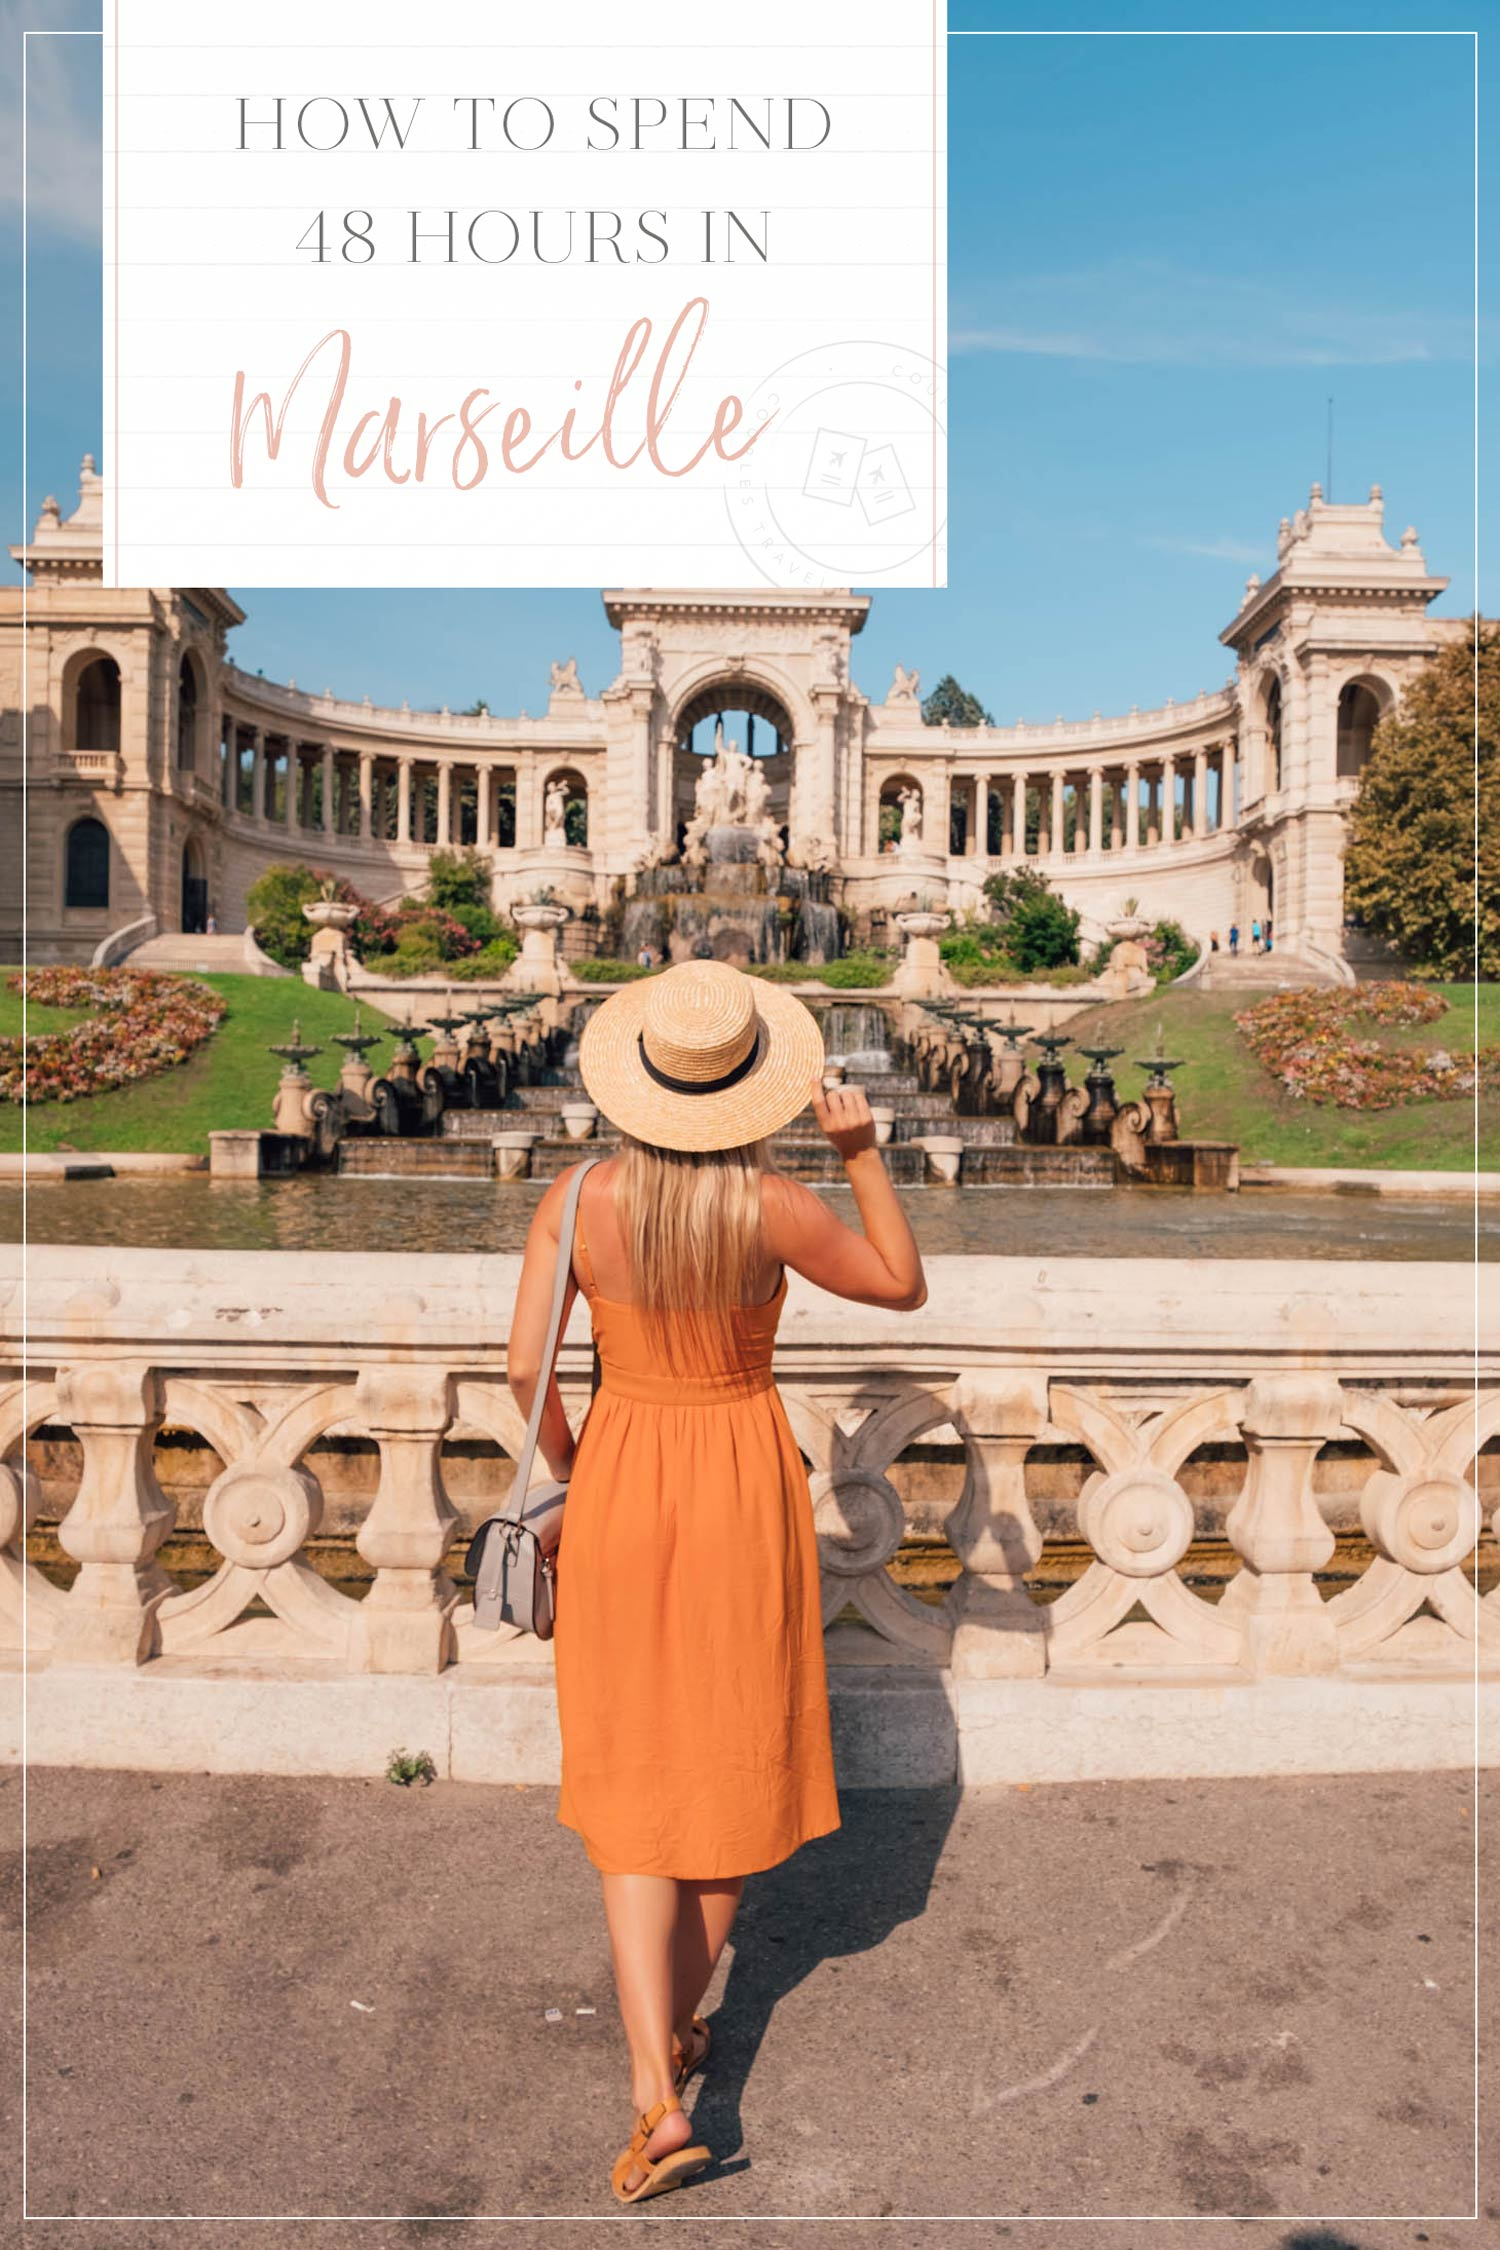 How to spend 48 hours in Marseille